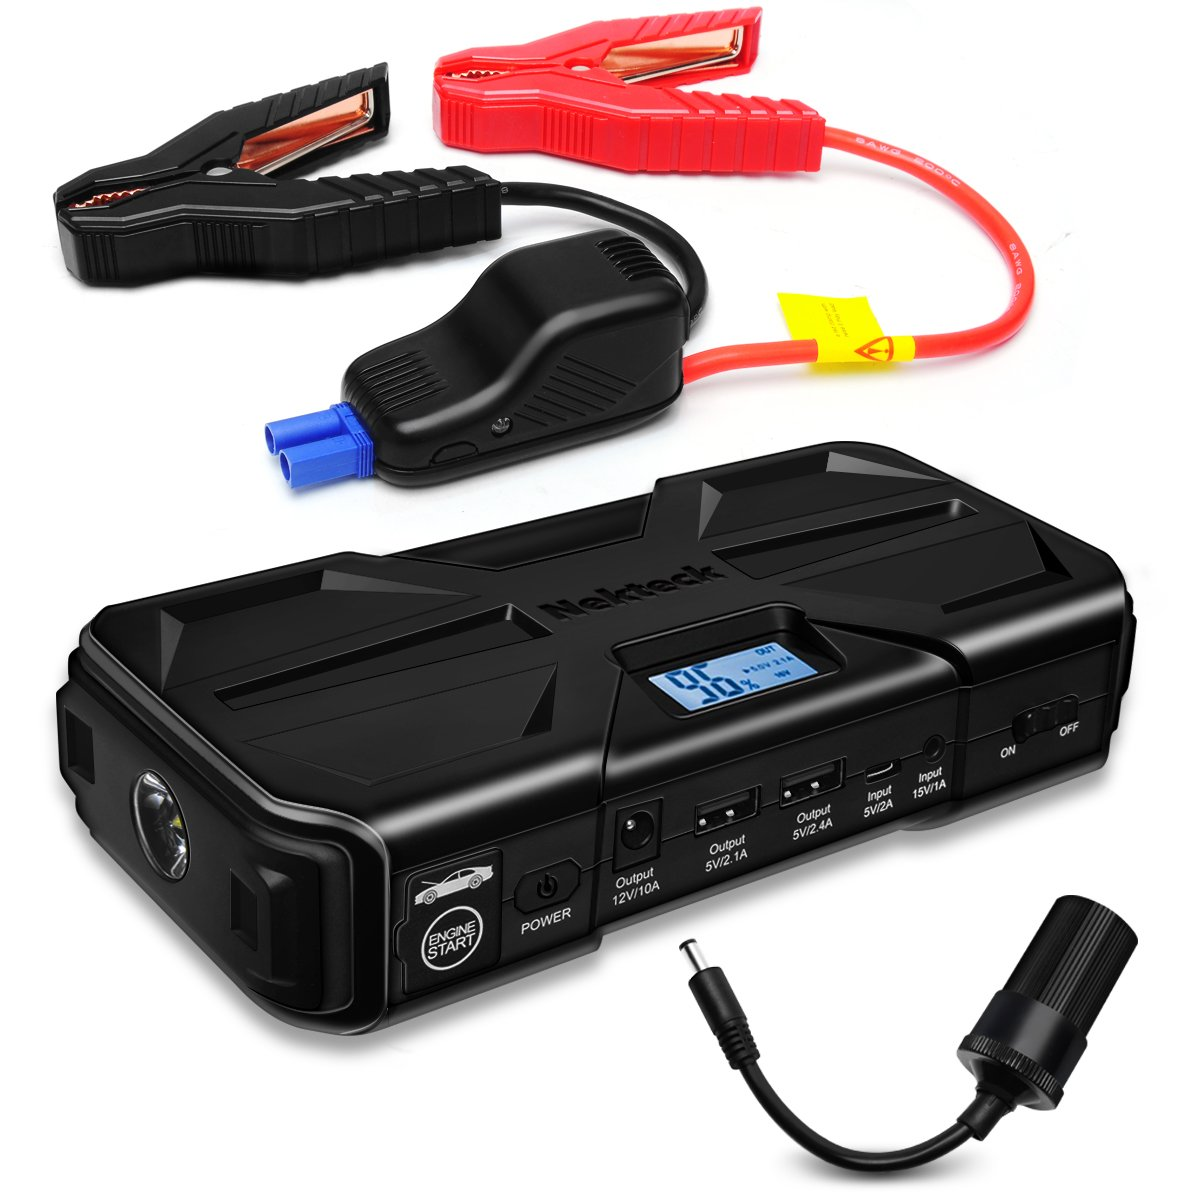 Nekteck Car Jump Starter 800A Peak 20000mAh Jump Starter Emergency Battery Pack Jump starter